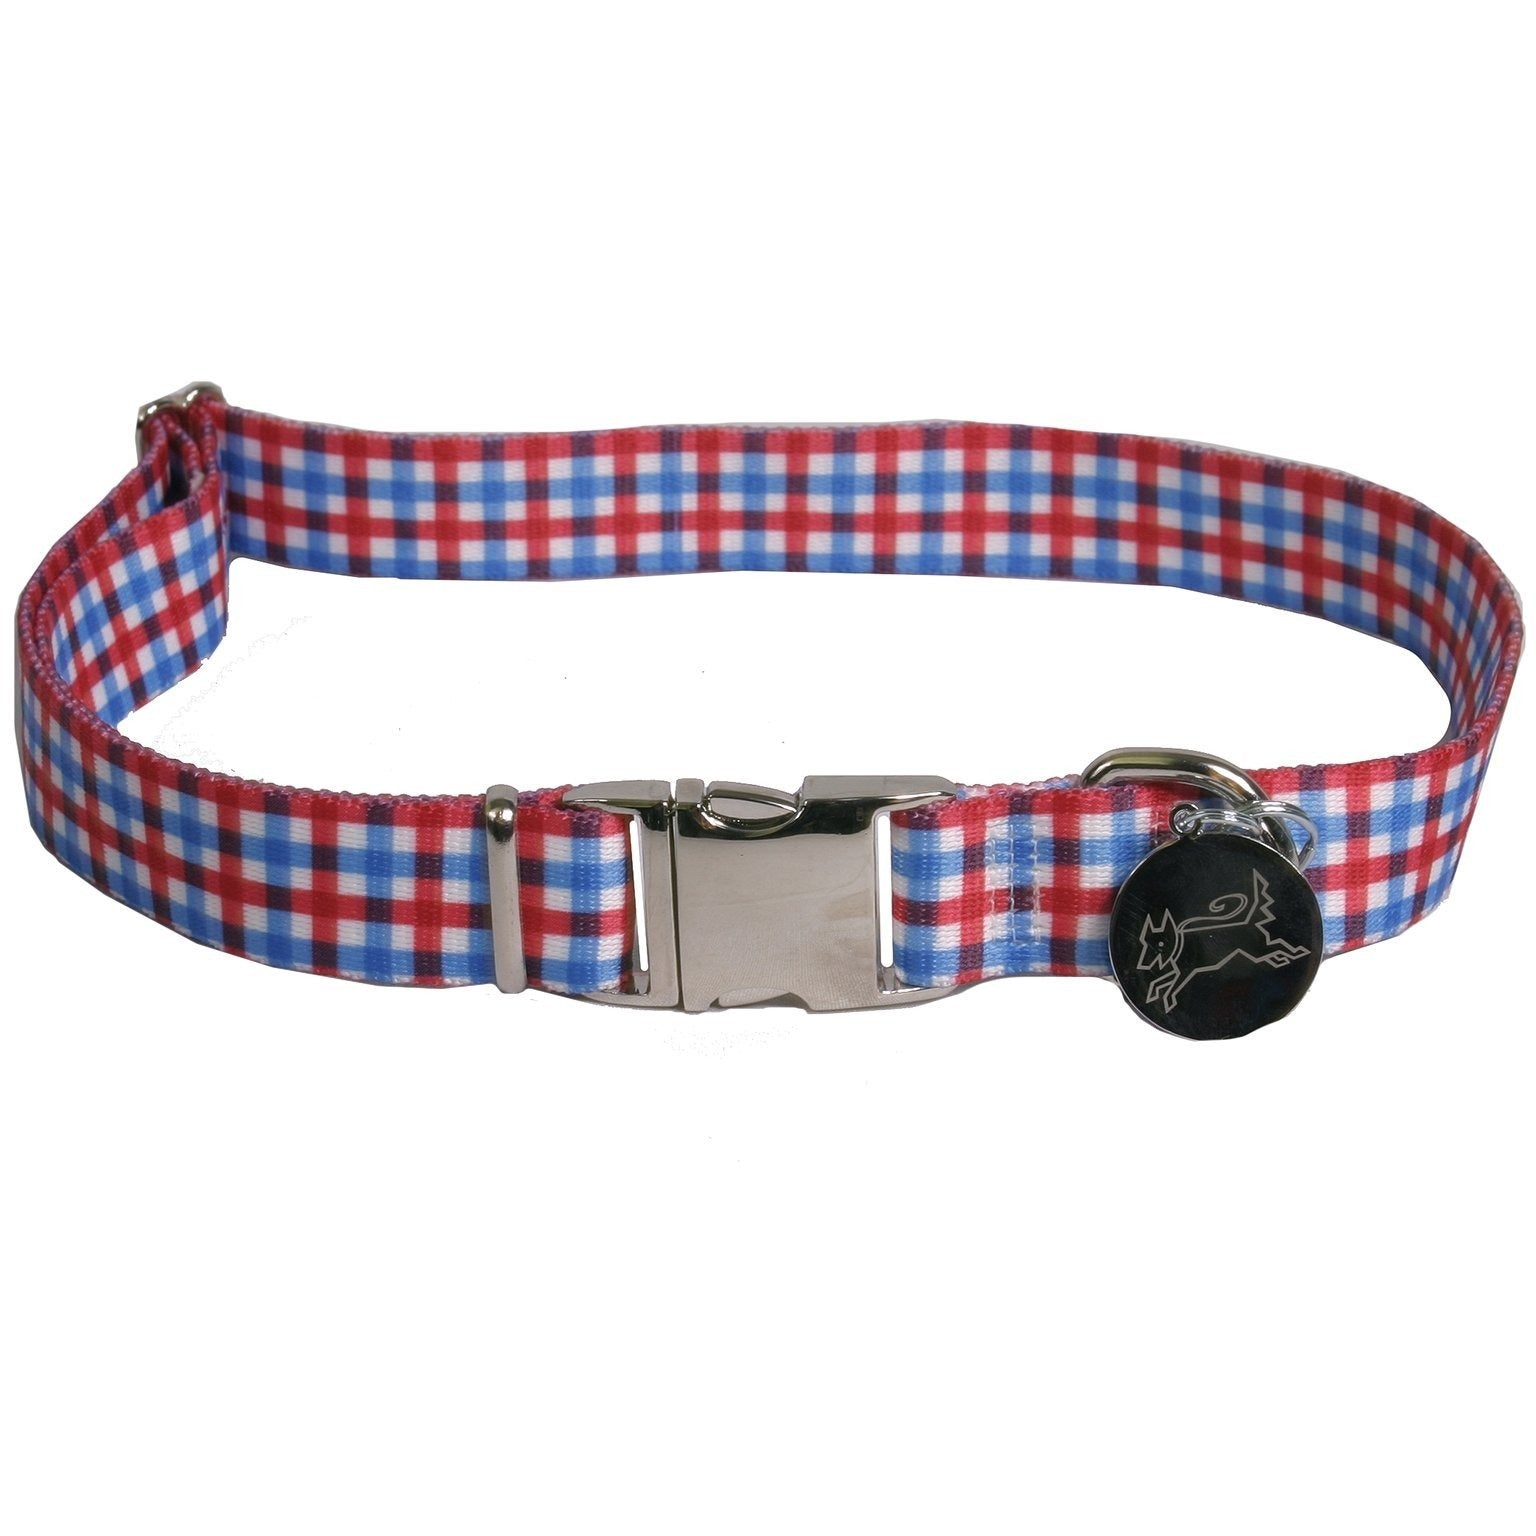 Yellow Dog Design Gingham Red & Blue Dog Collar